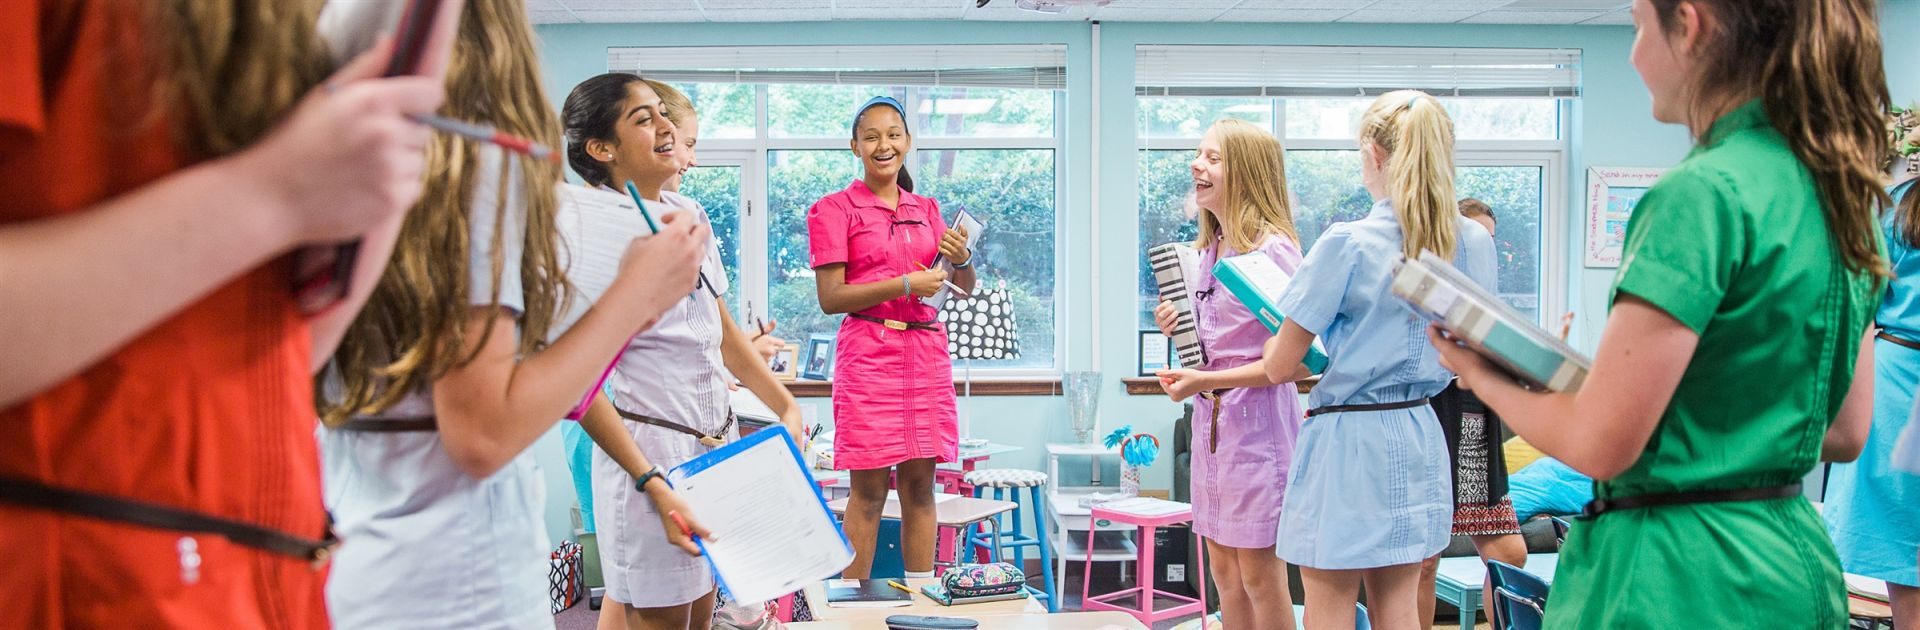 GPS girls stand on chairs in classroom as part of an activity